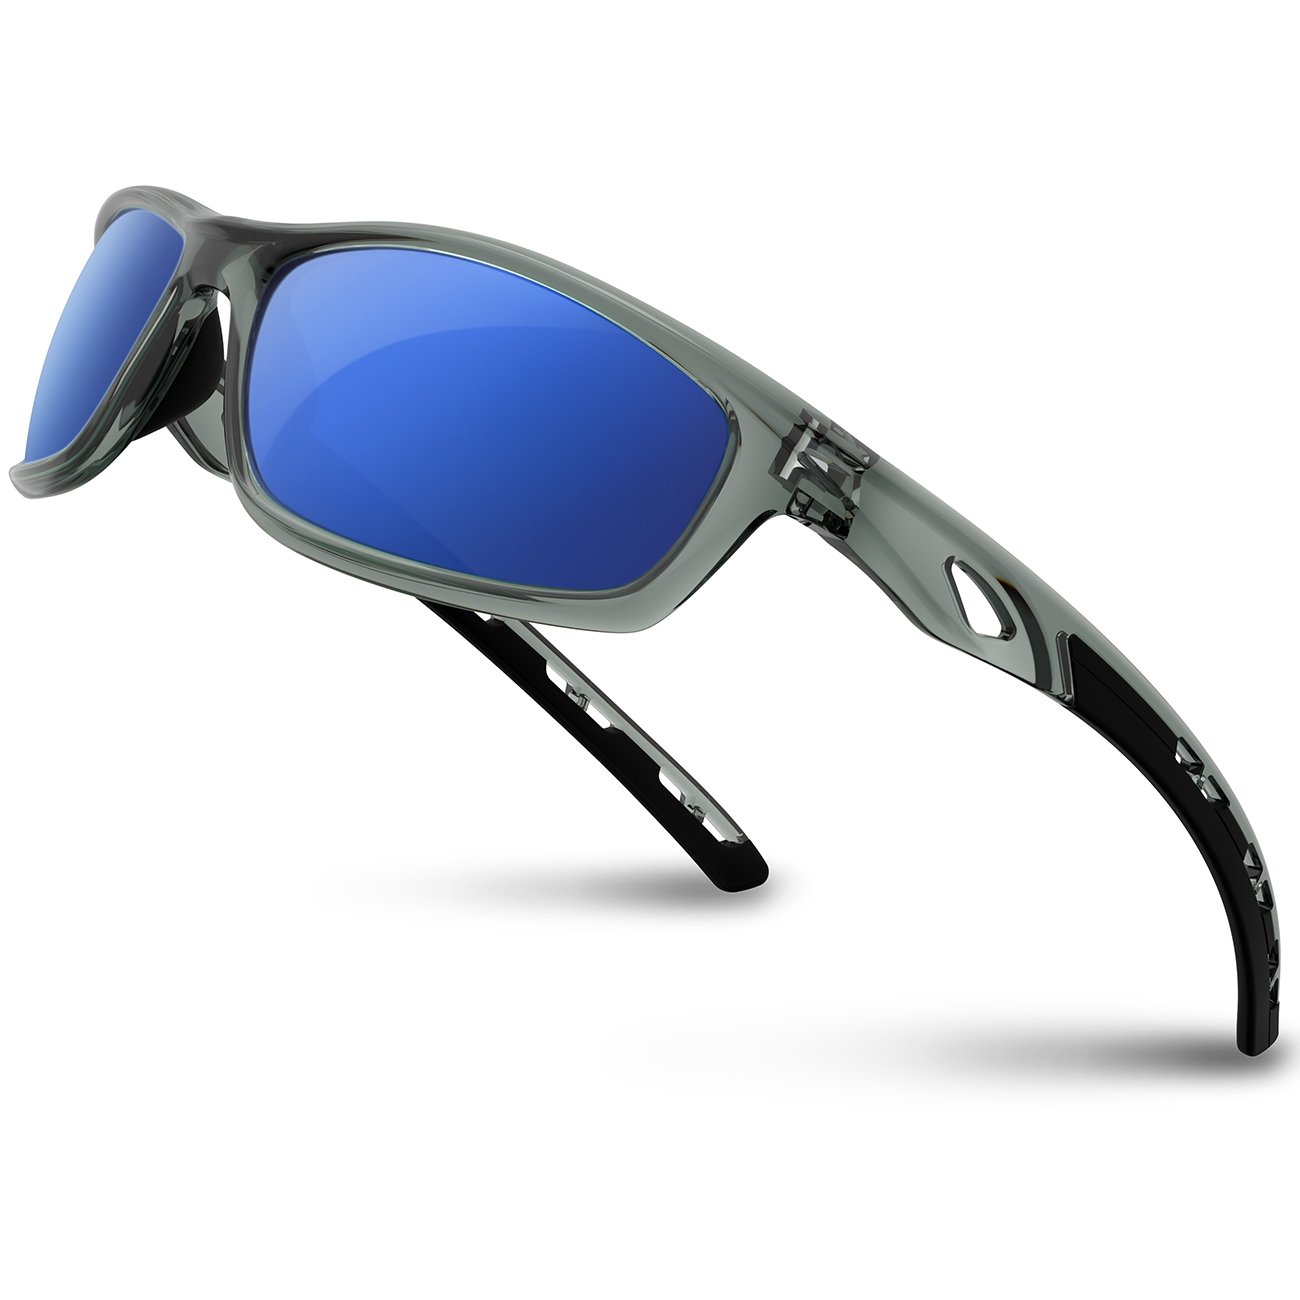 c7b16f9ac9 RIVBOS Polarized Sports Sunglasses Driving Sun Glasses Shades for Men Women  Tr 90 Unbreakable Frame for Cycling Baseball Running Rb833 833-transparent  Grey ...